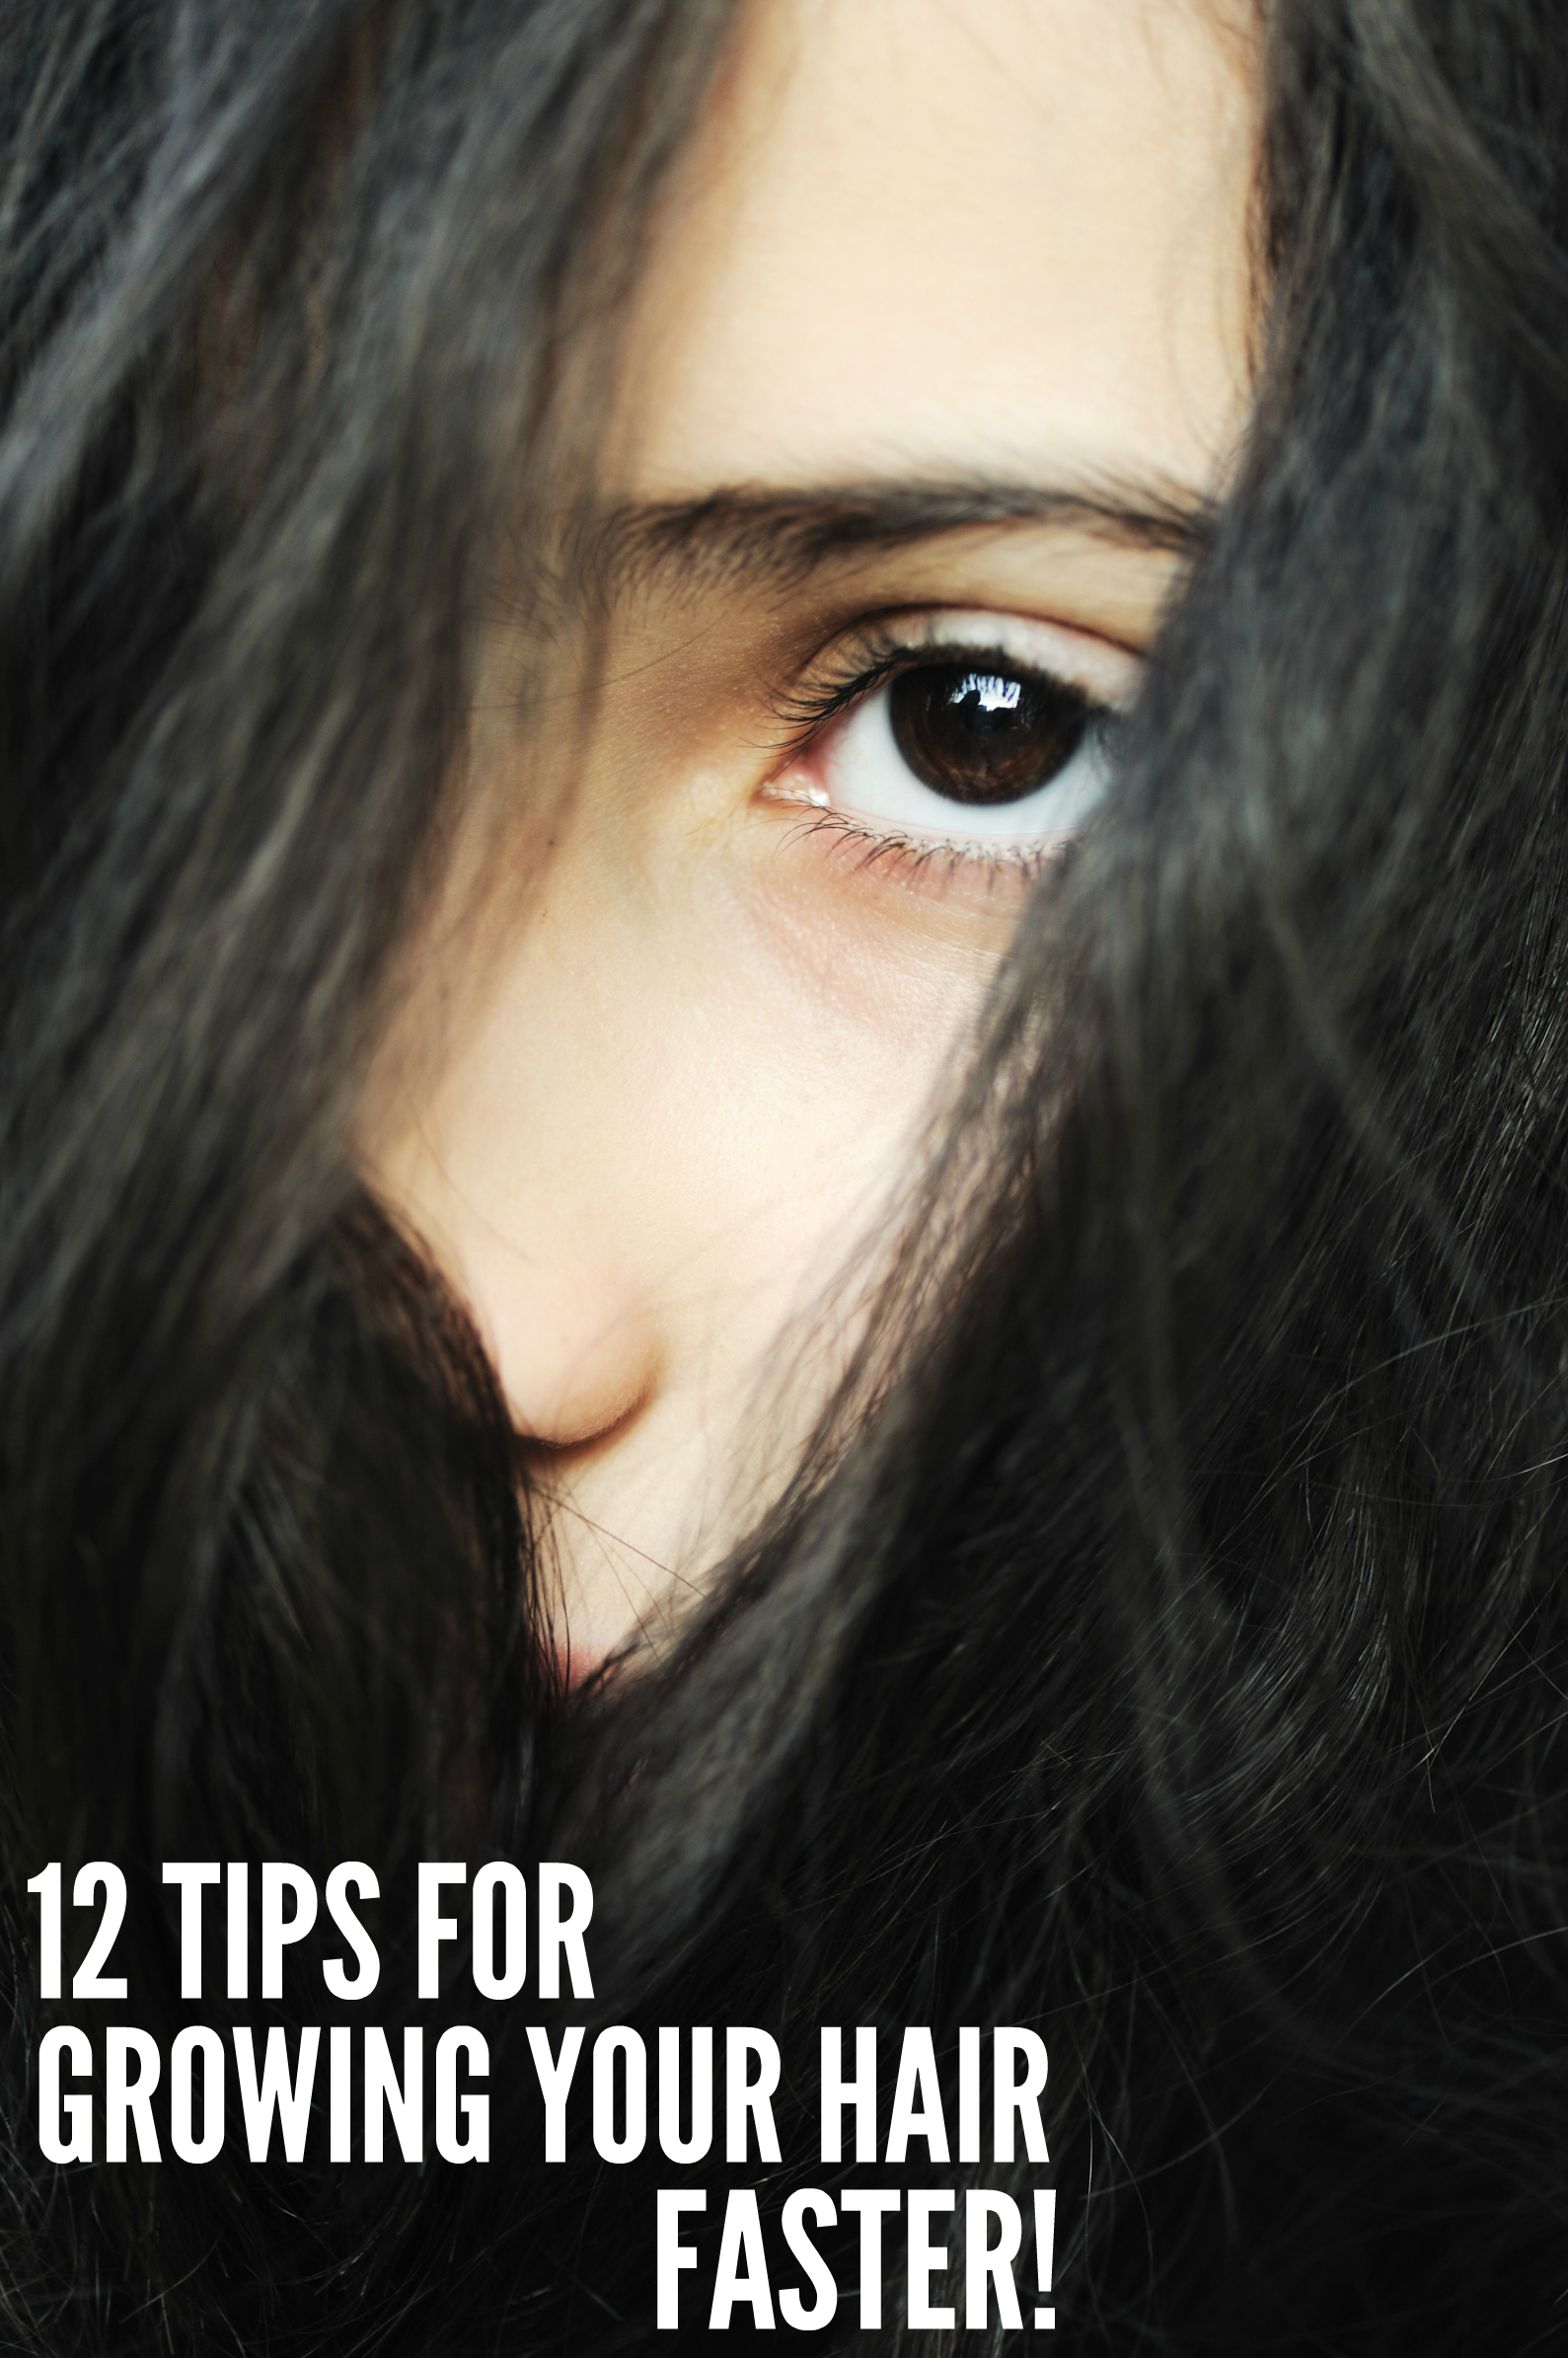 12 Tips for Growing Your Hair Faster